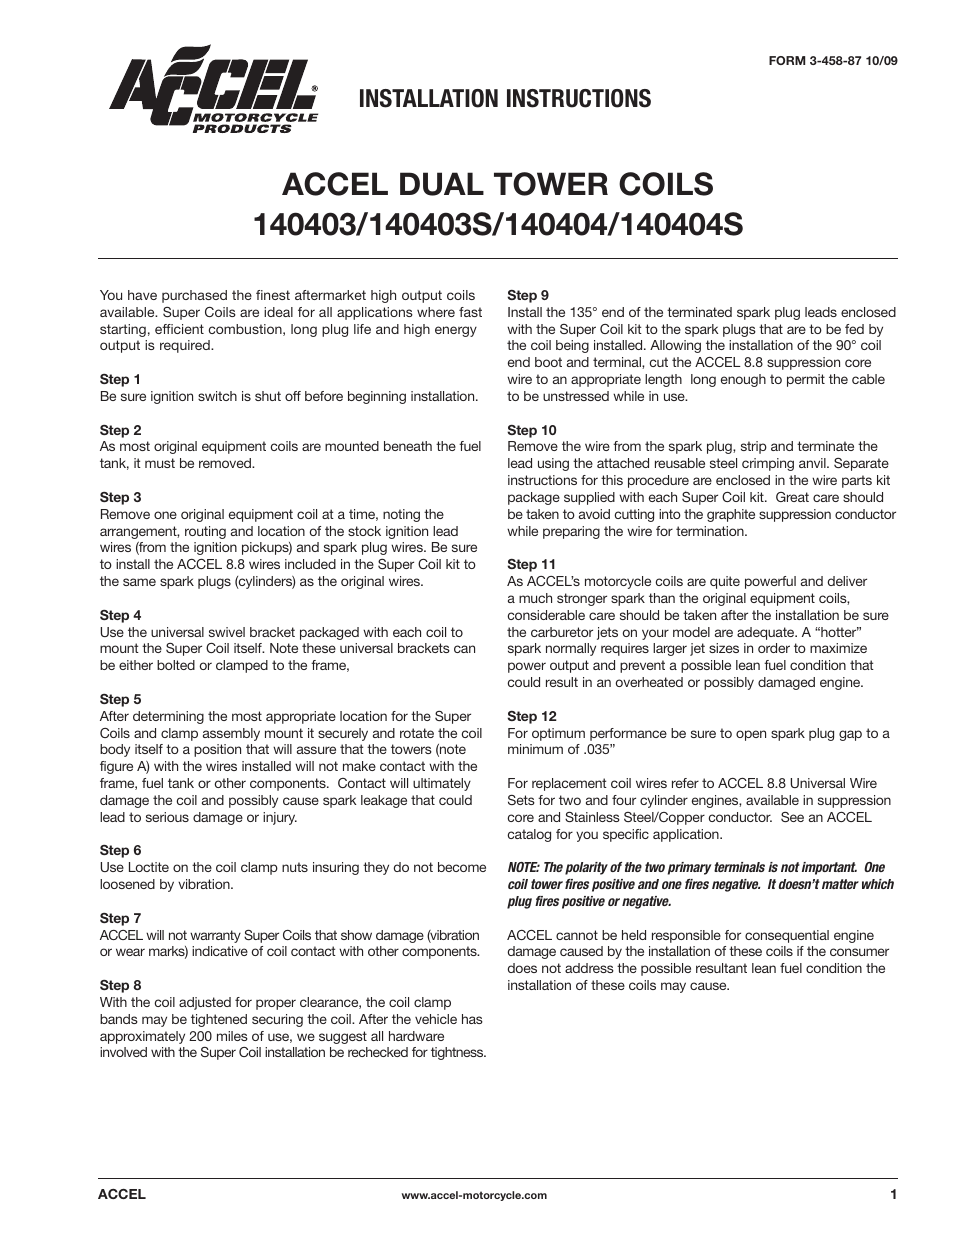 Mallory Ignition ACCEL DUAL TOWER COILS 140403/140403S/140404/140404S User  Manual | 2 pages